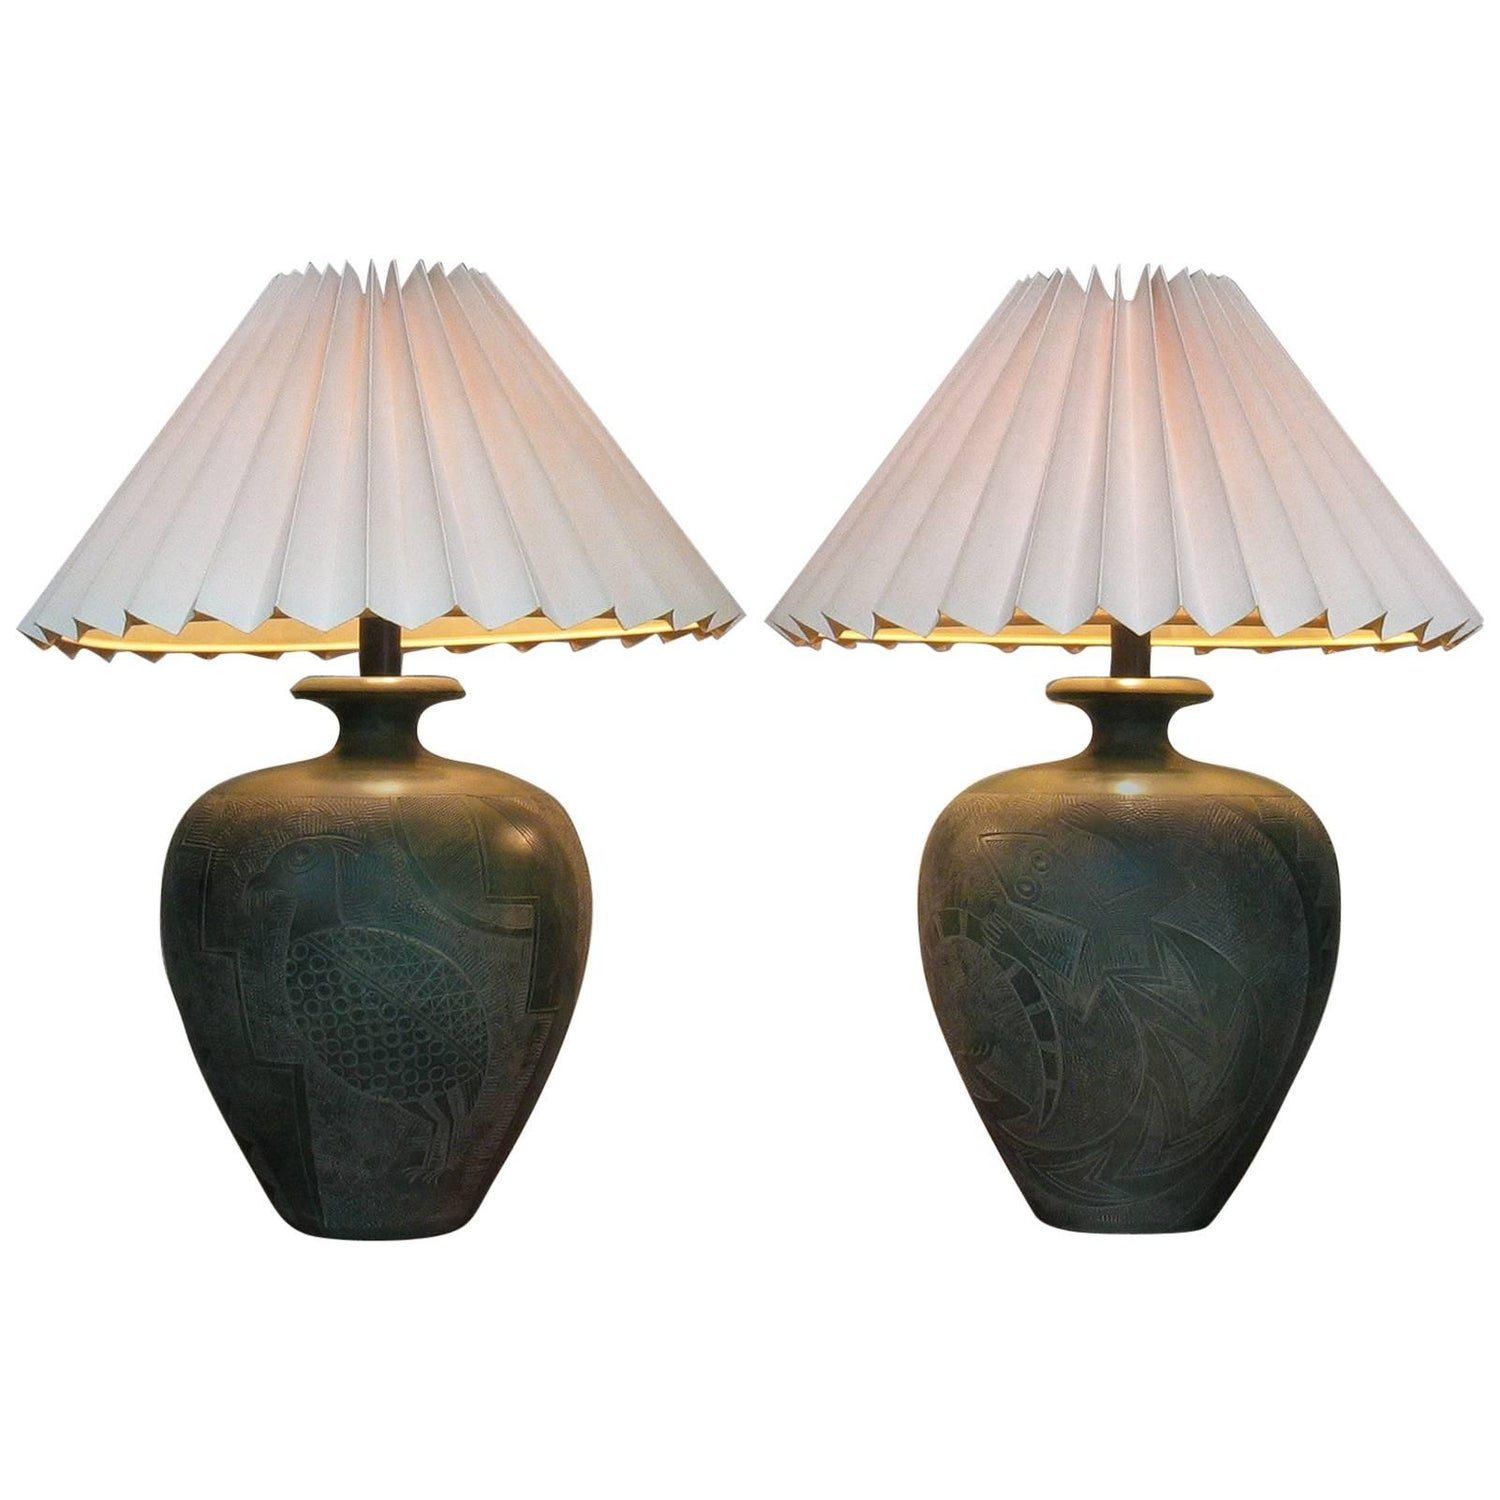 Casual lamps of california table lamps 5 for sale at 1stdibs large pair of southwestern table lamps by casual lamps of california aloadofball Gallery